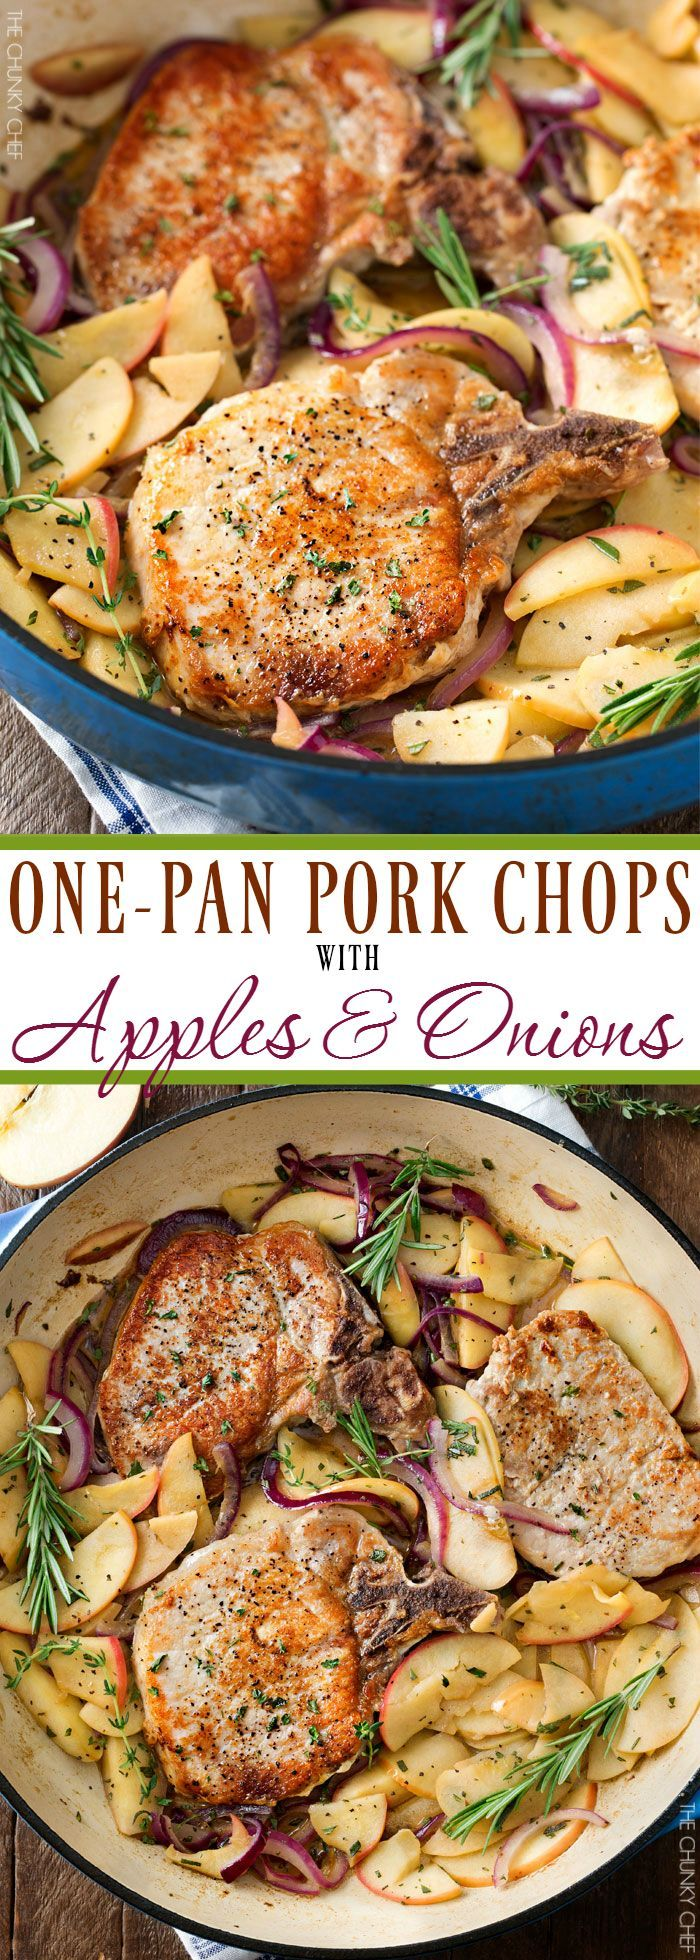 One Pan Pork Chops with Apples and Onions   Amazing Fall flavors combine in this one pan, 30 minute pork chop meal!   http://thechunkychef.com